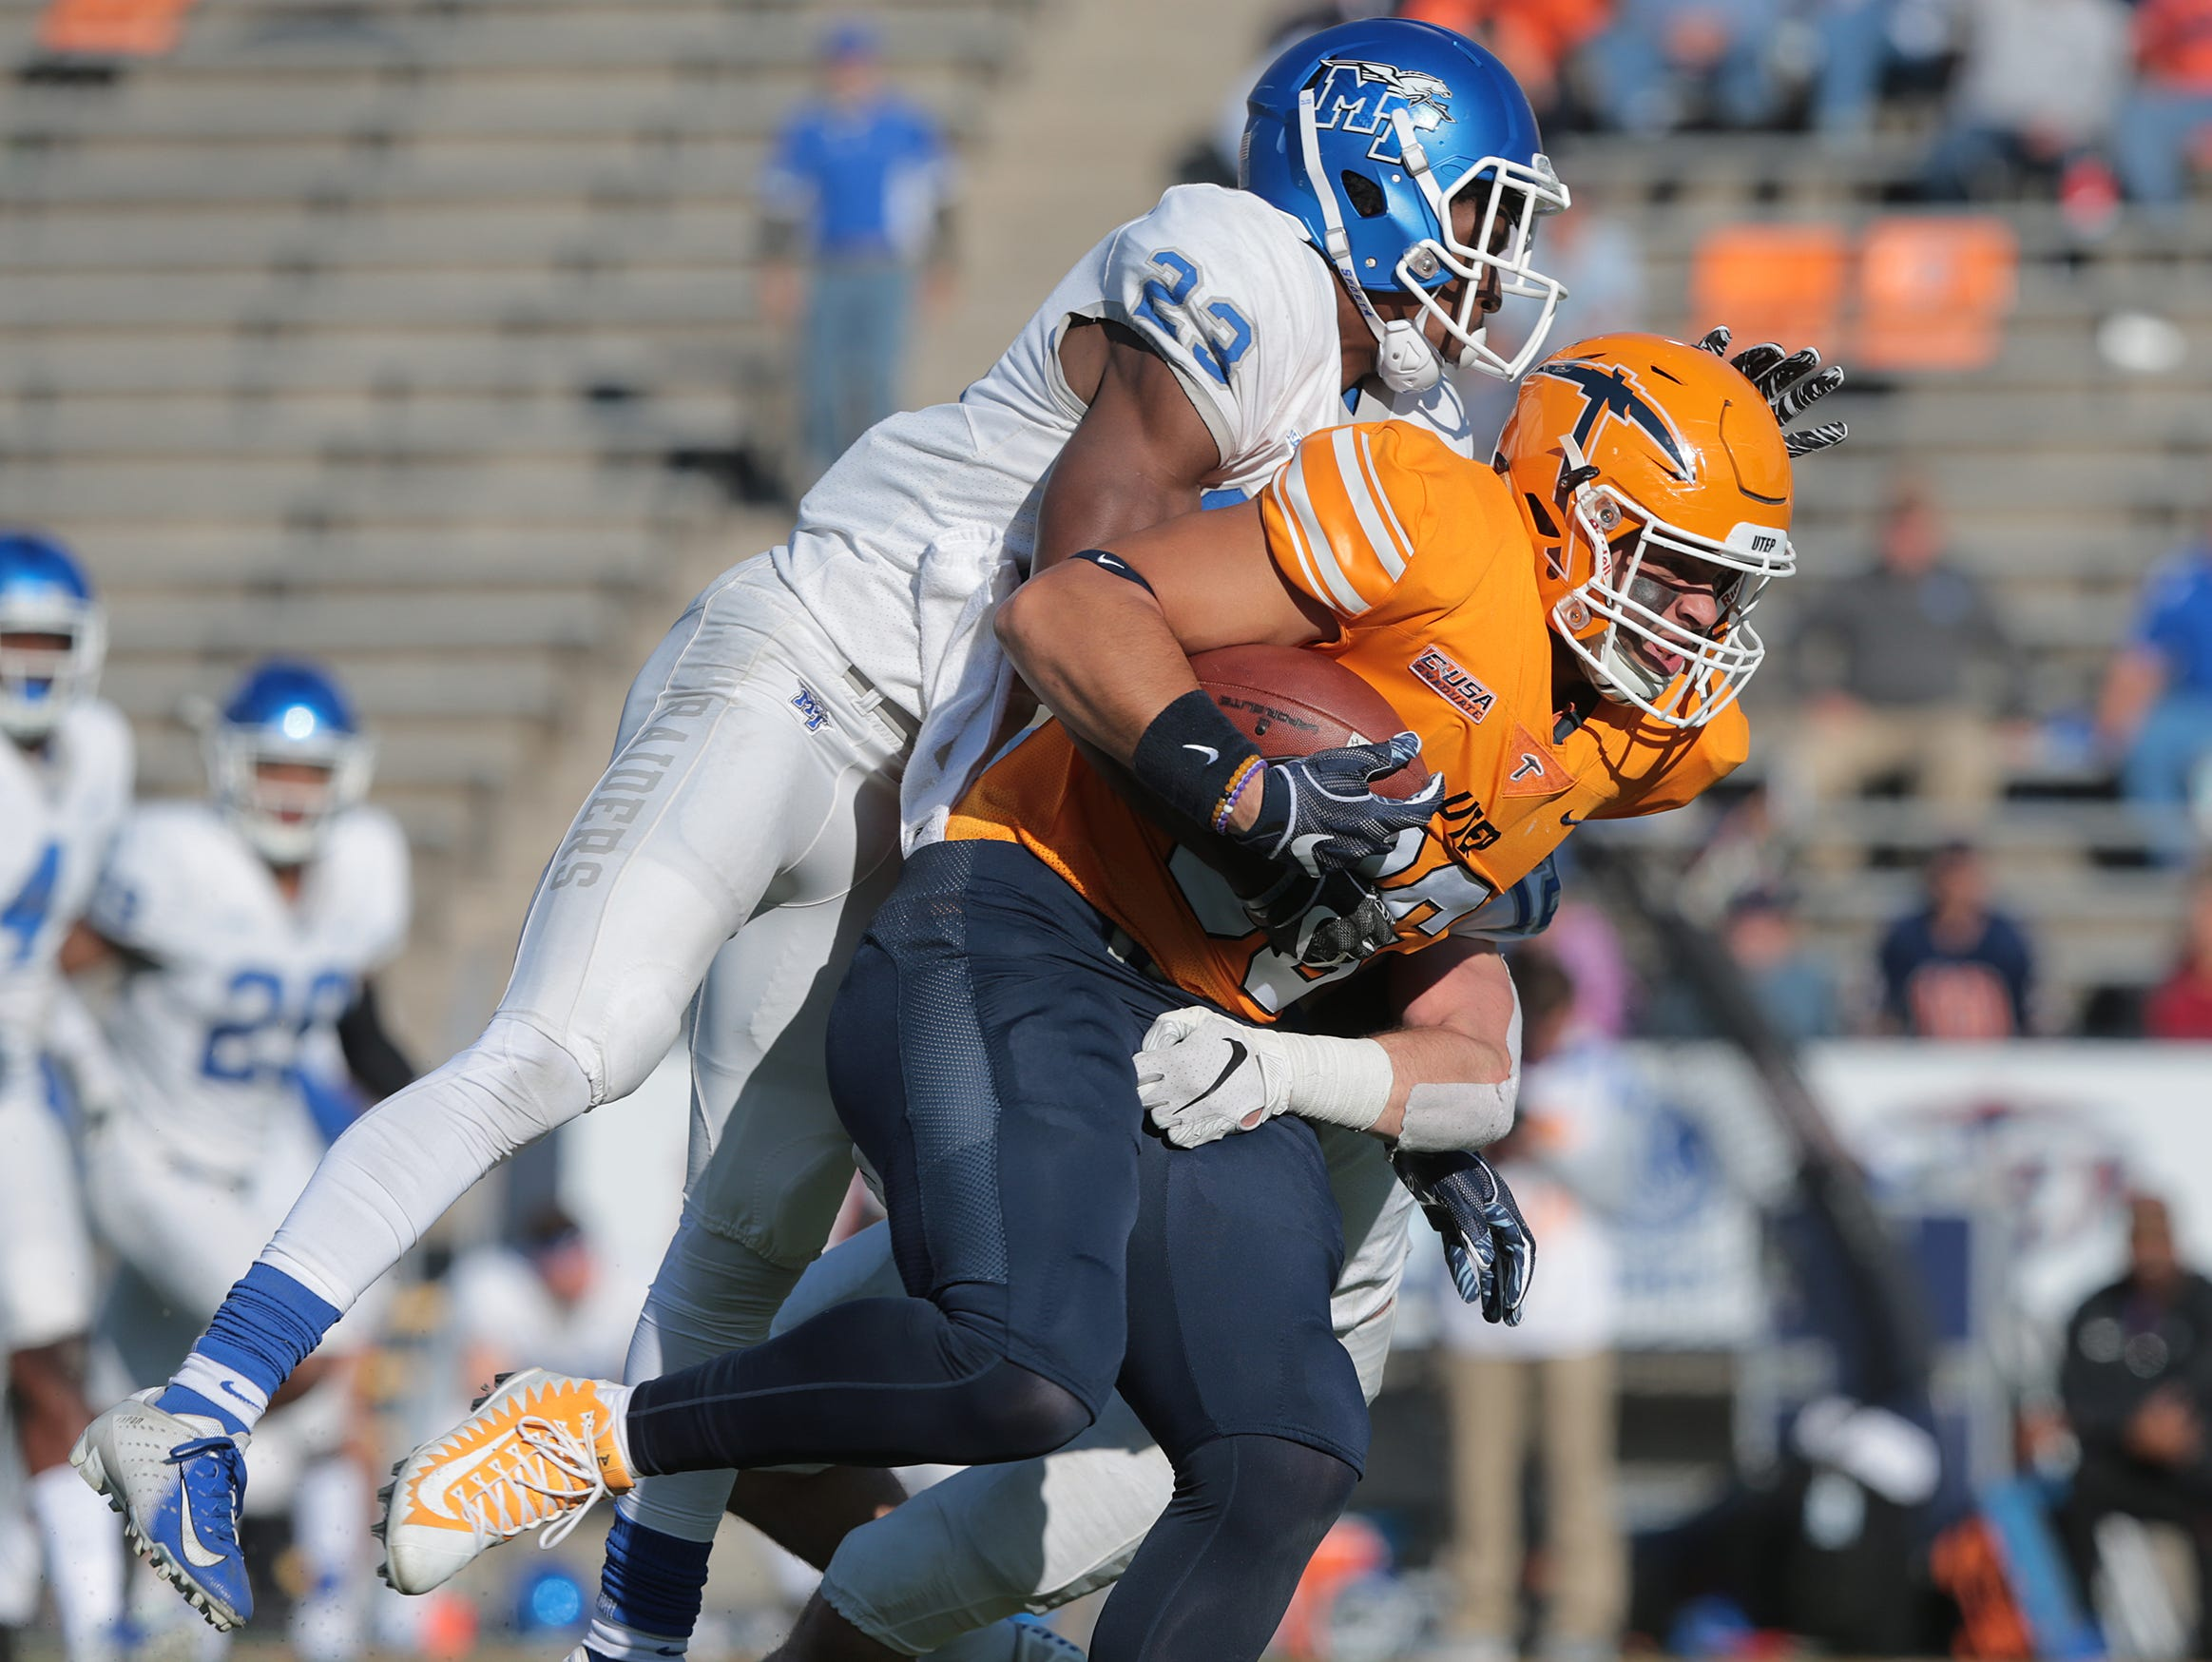 The UTEP Miners had a chance to add to their win this season with a visit from Middle Tennessee at Sun Bowl Stadium, but the Blue Raiders defeated the Miners, 48-32.